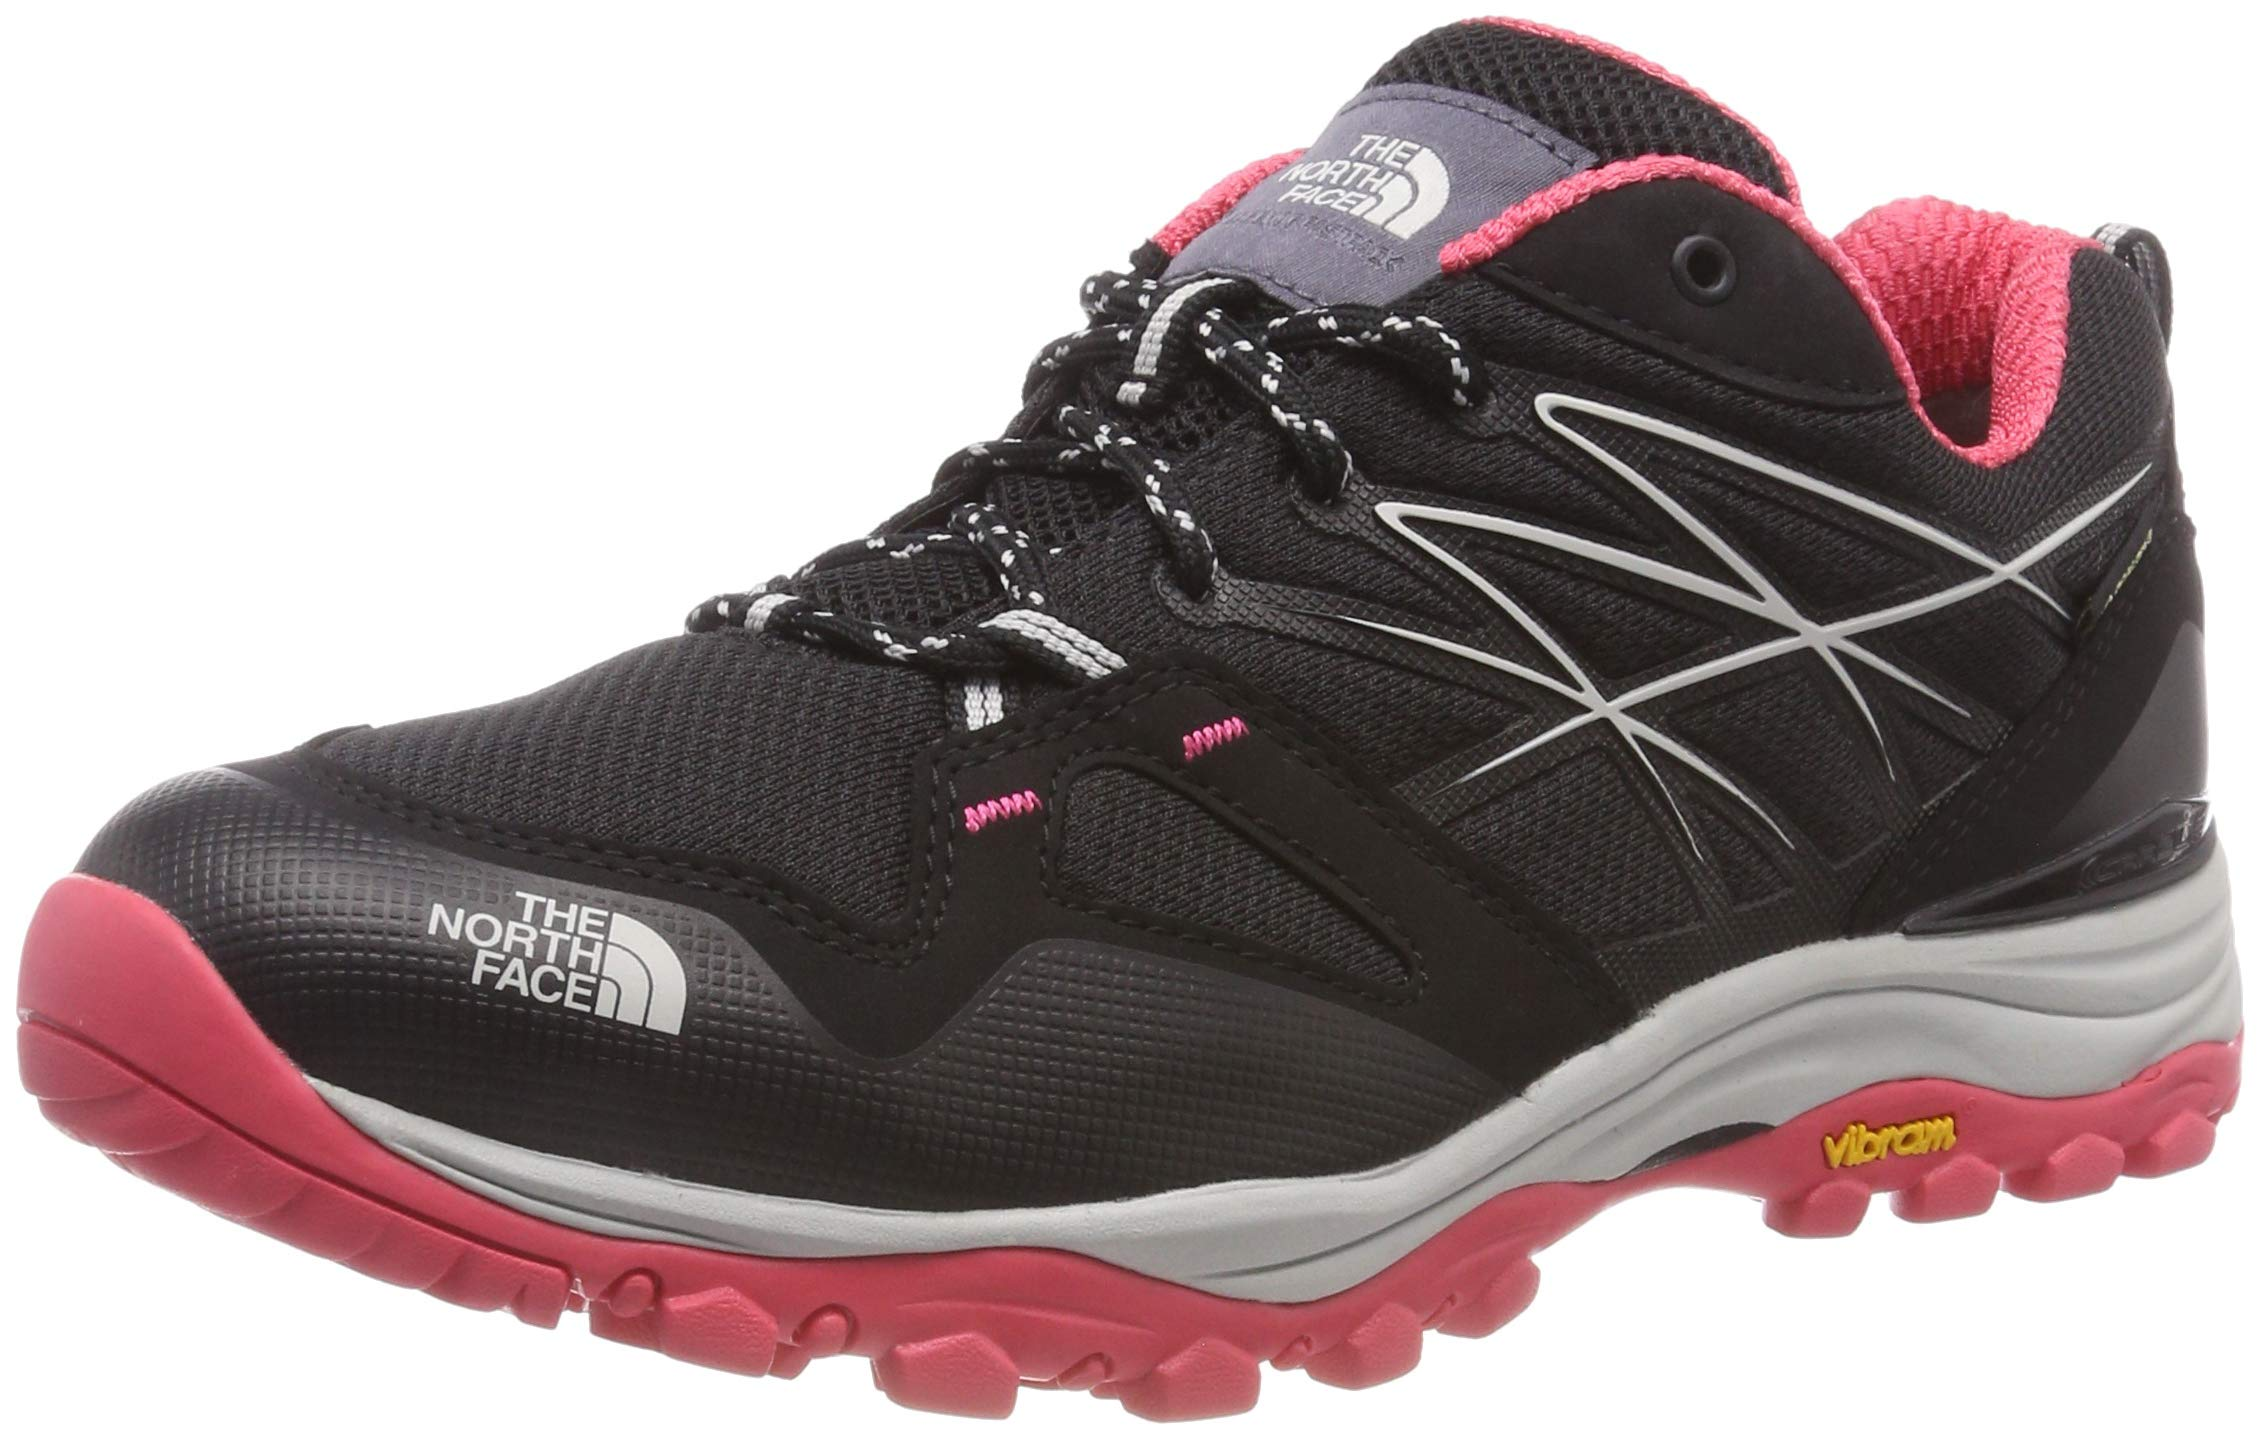 12932ad74b1 THE NORTH FACE Women's Hedgehog Fastpack GTX (EU) Low Rise Hiking Boots